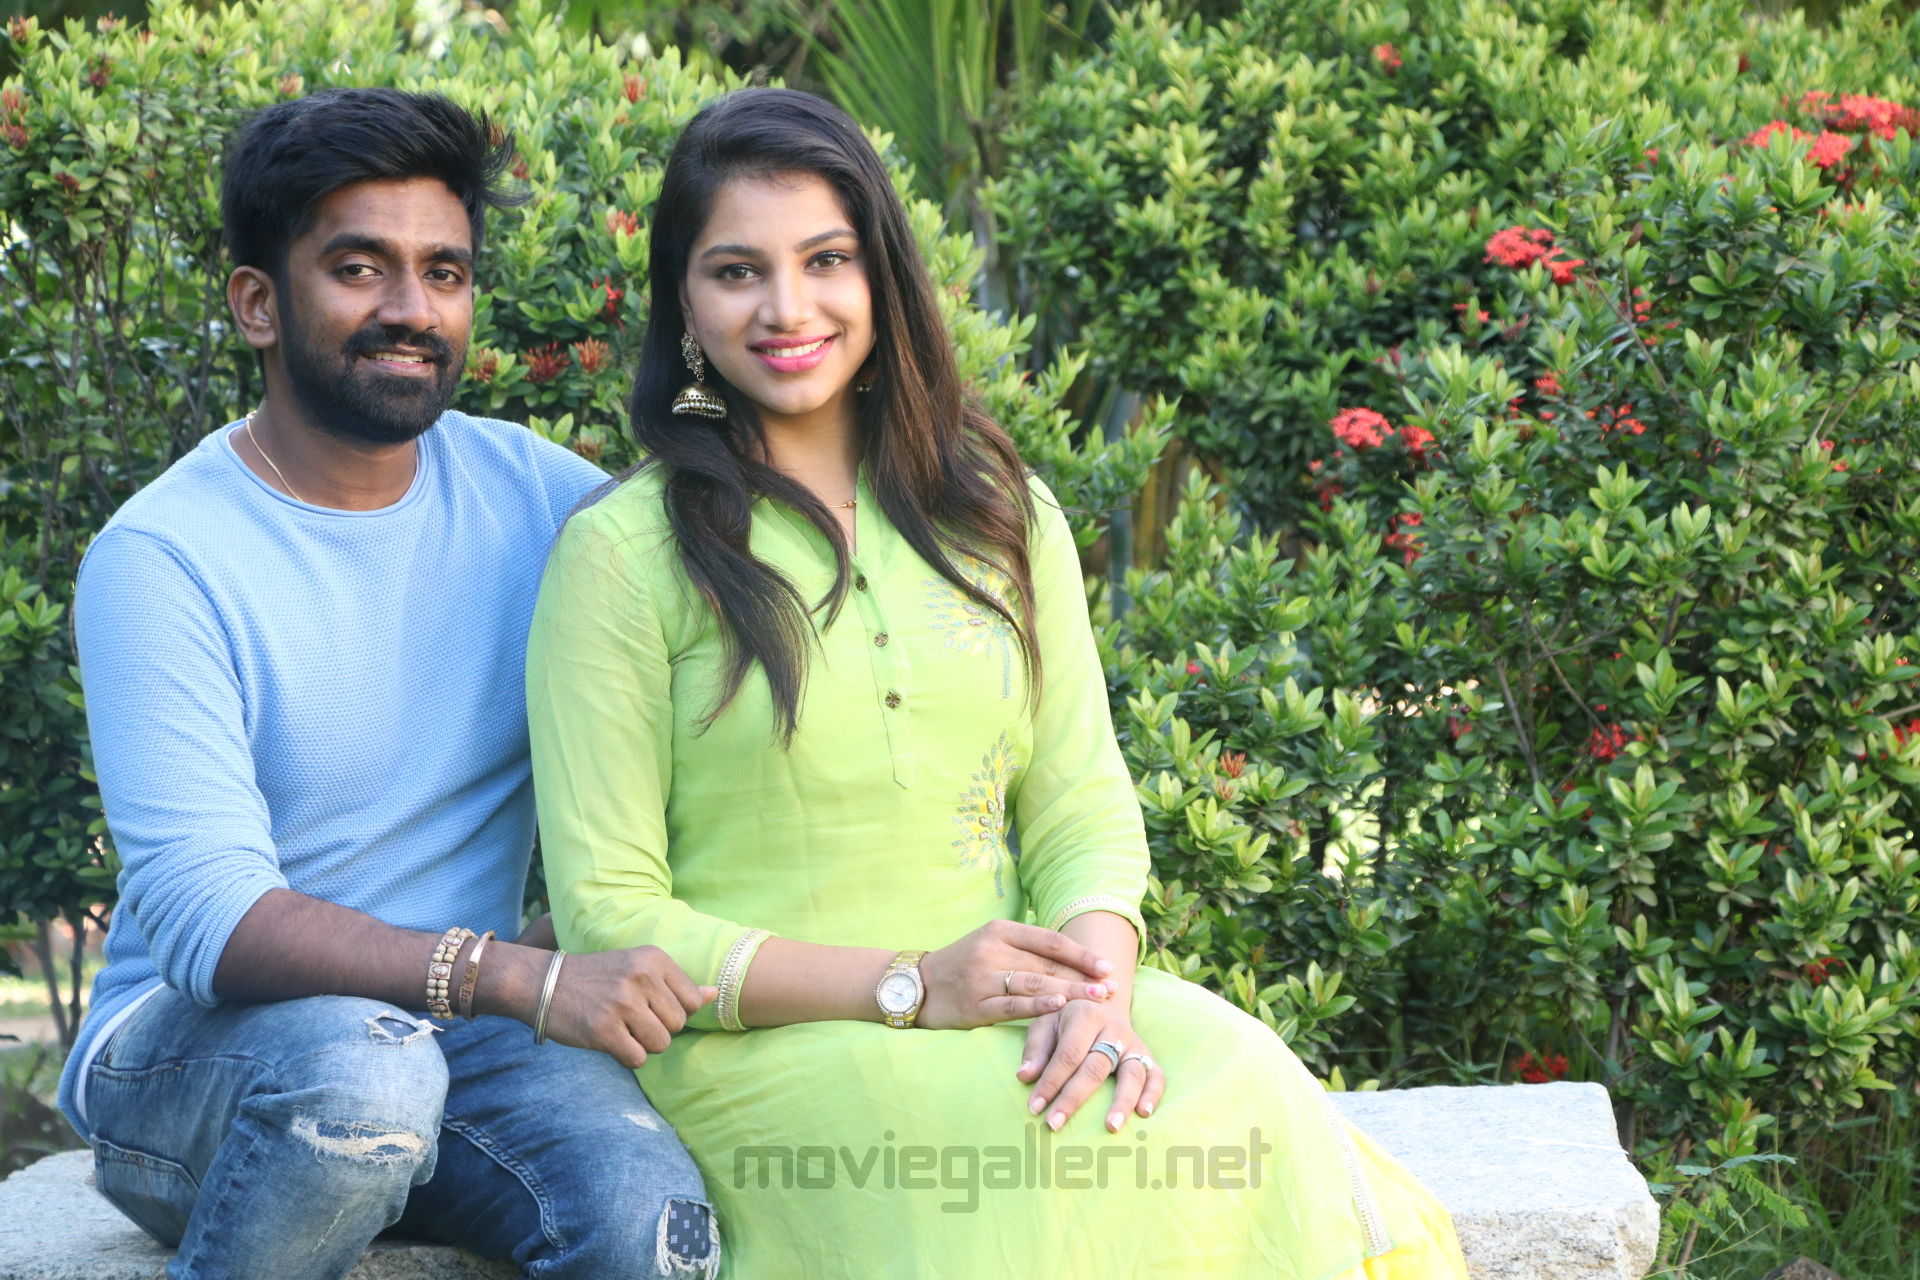 Music director Dharan Kumar weds Actress Deekshitha Manikkam